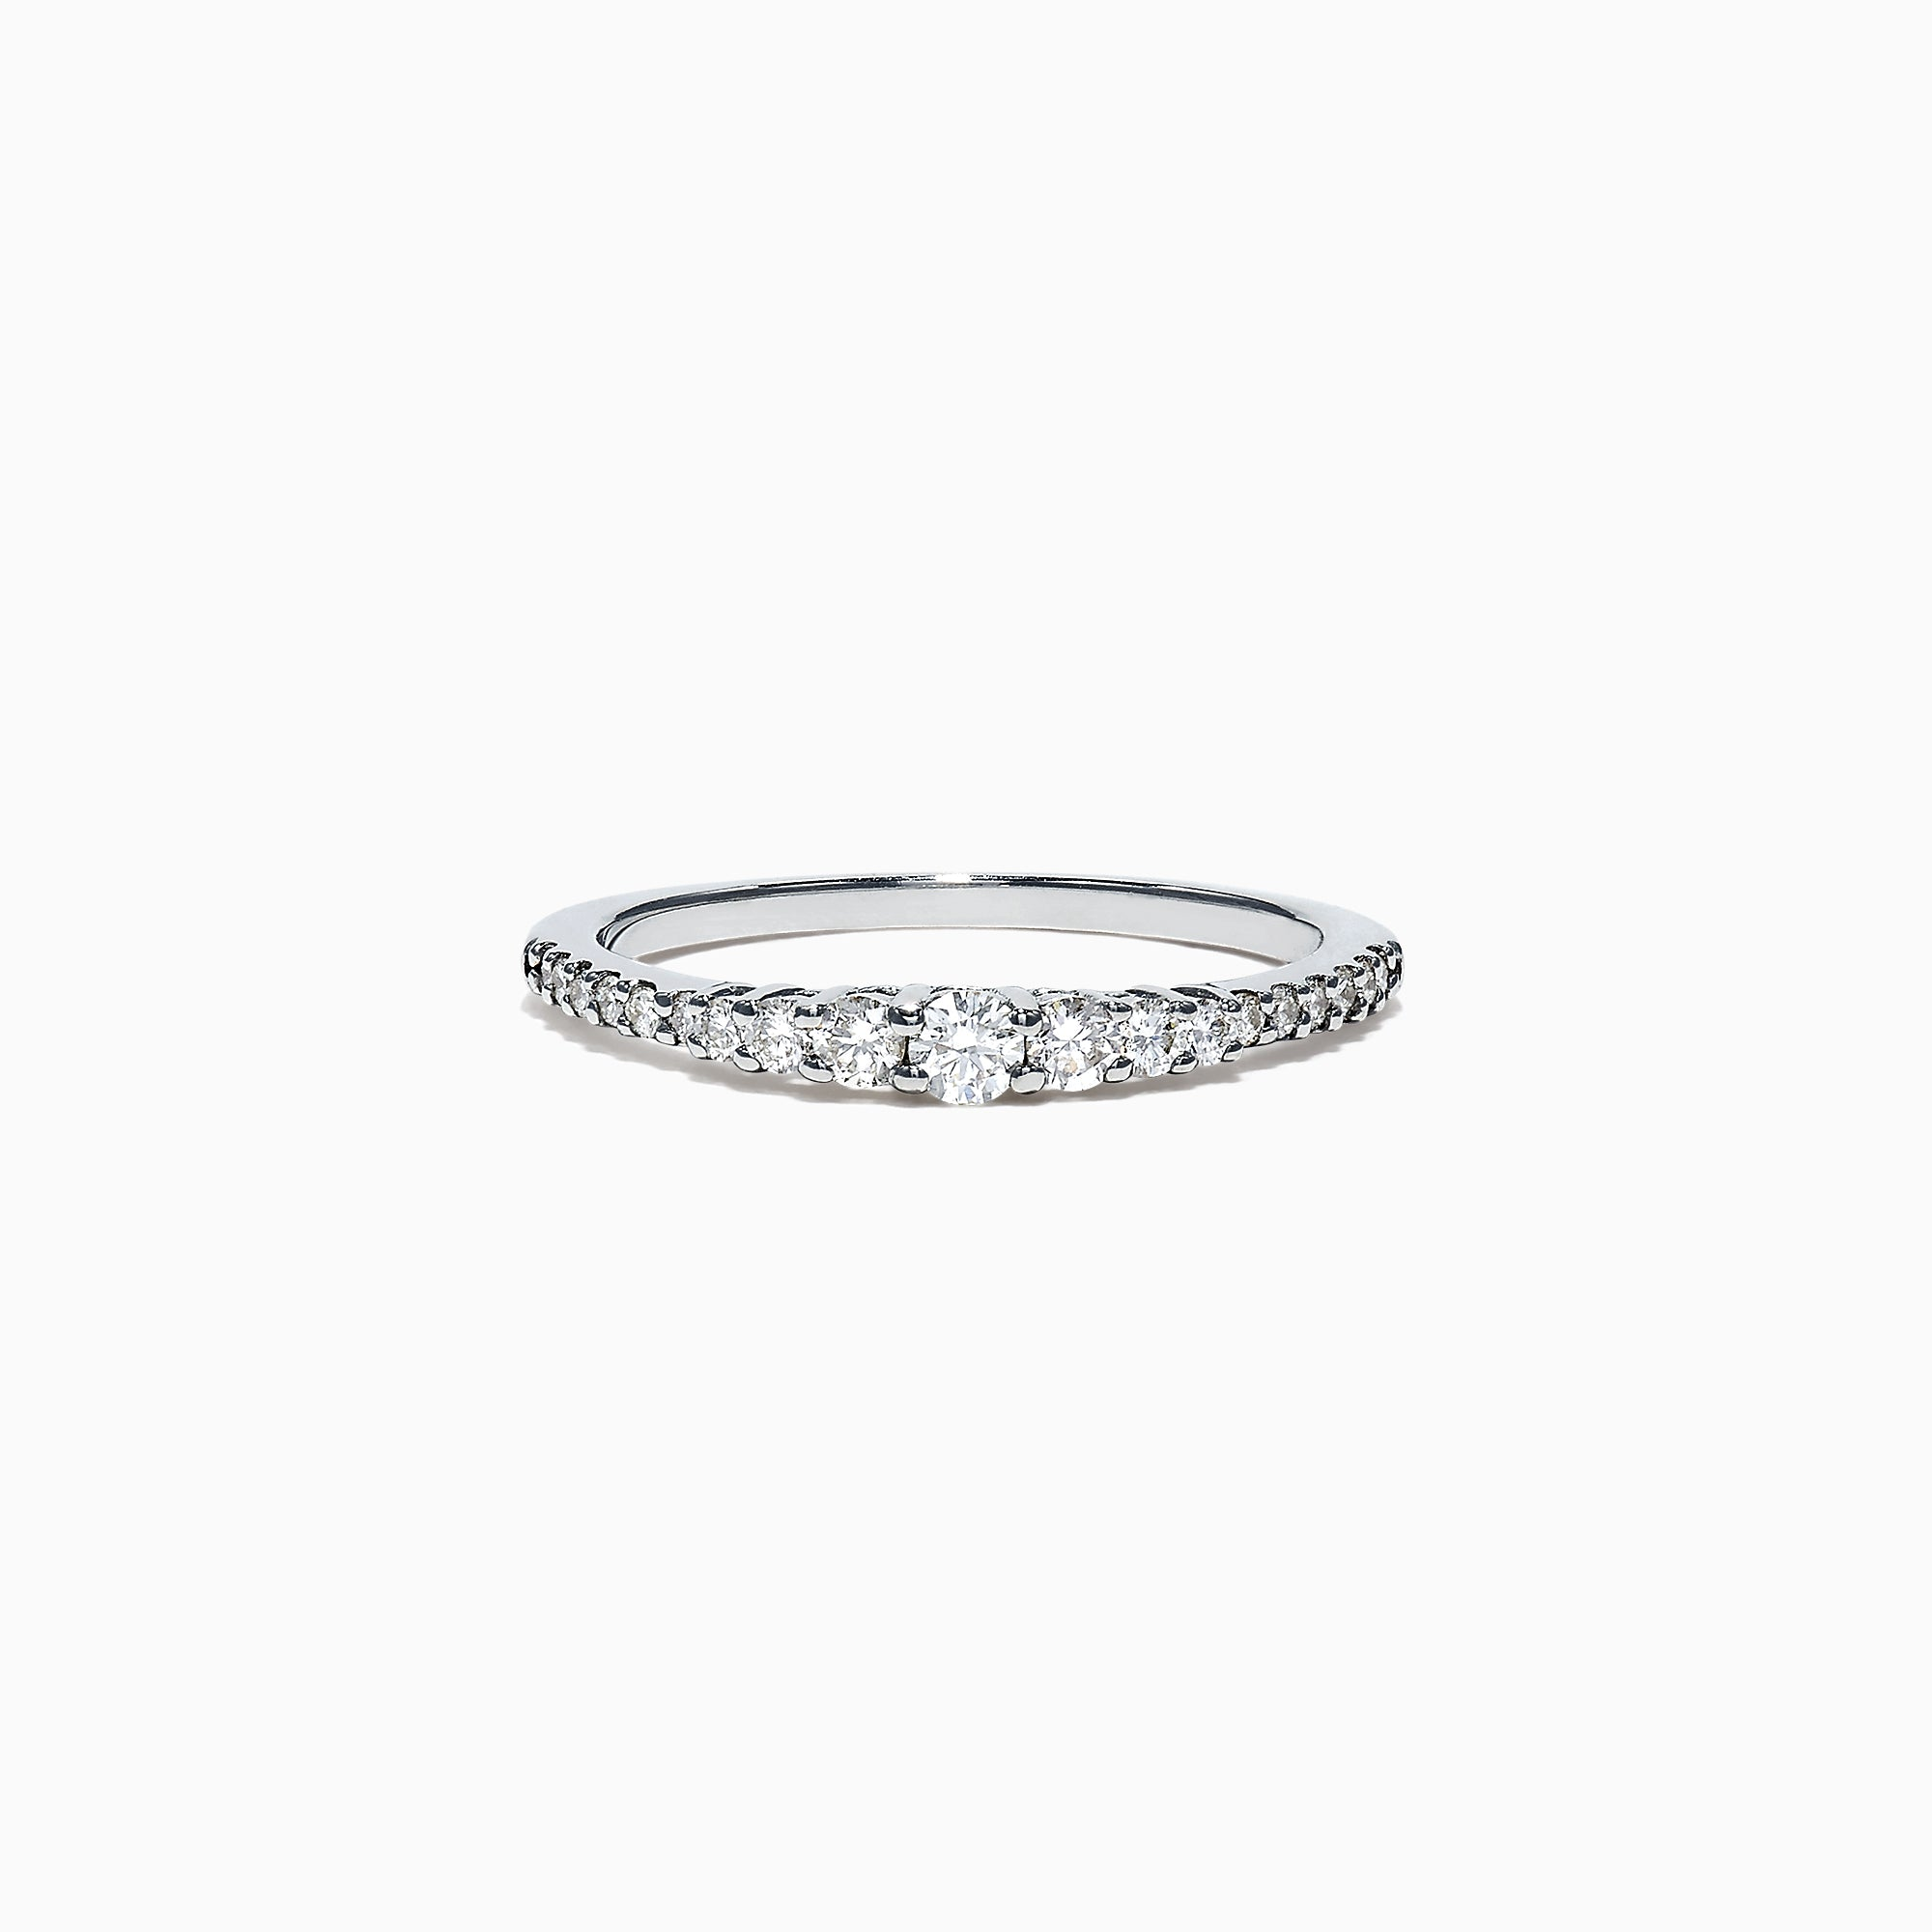 Effy Pave Classica 14K White Gold Diamond Band Ring, 0.31 TCW